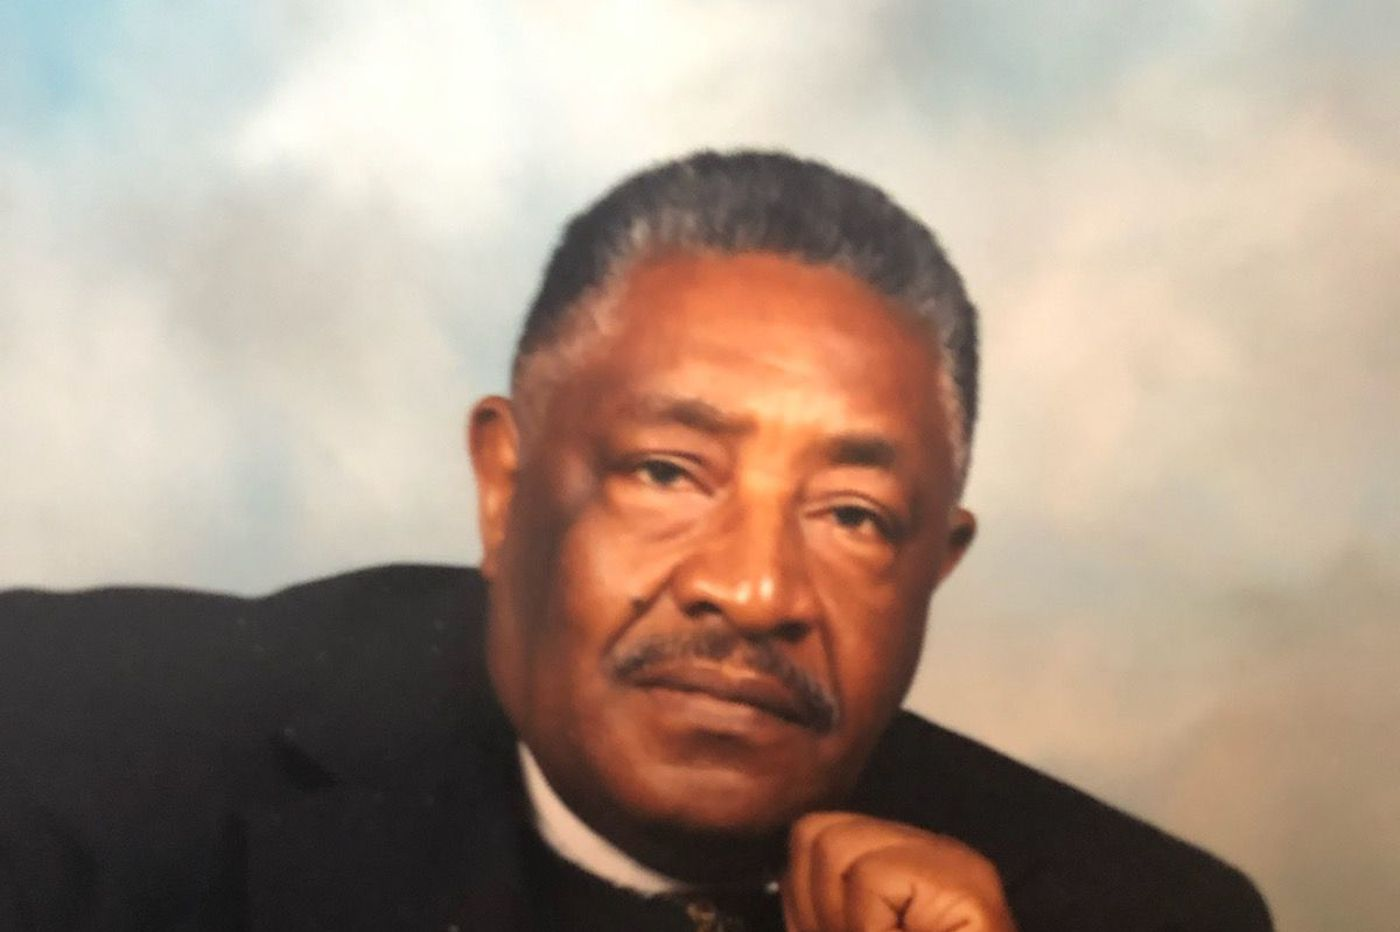 The Rev. Edward W. Dorn, 85, retired pastor, SEPTA employee